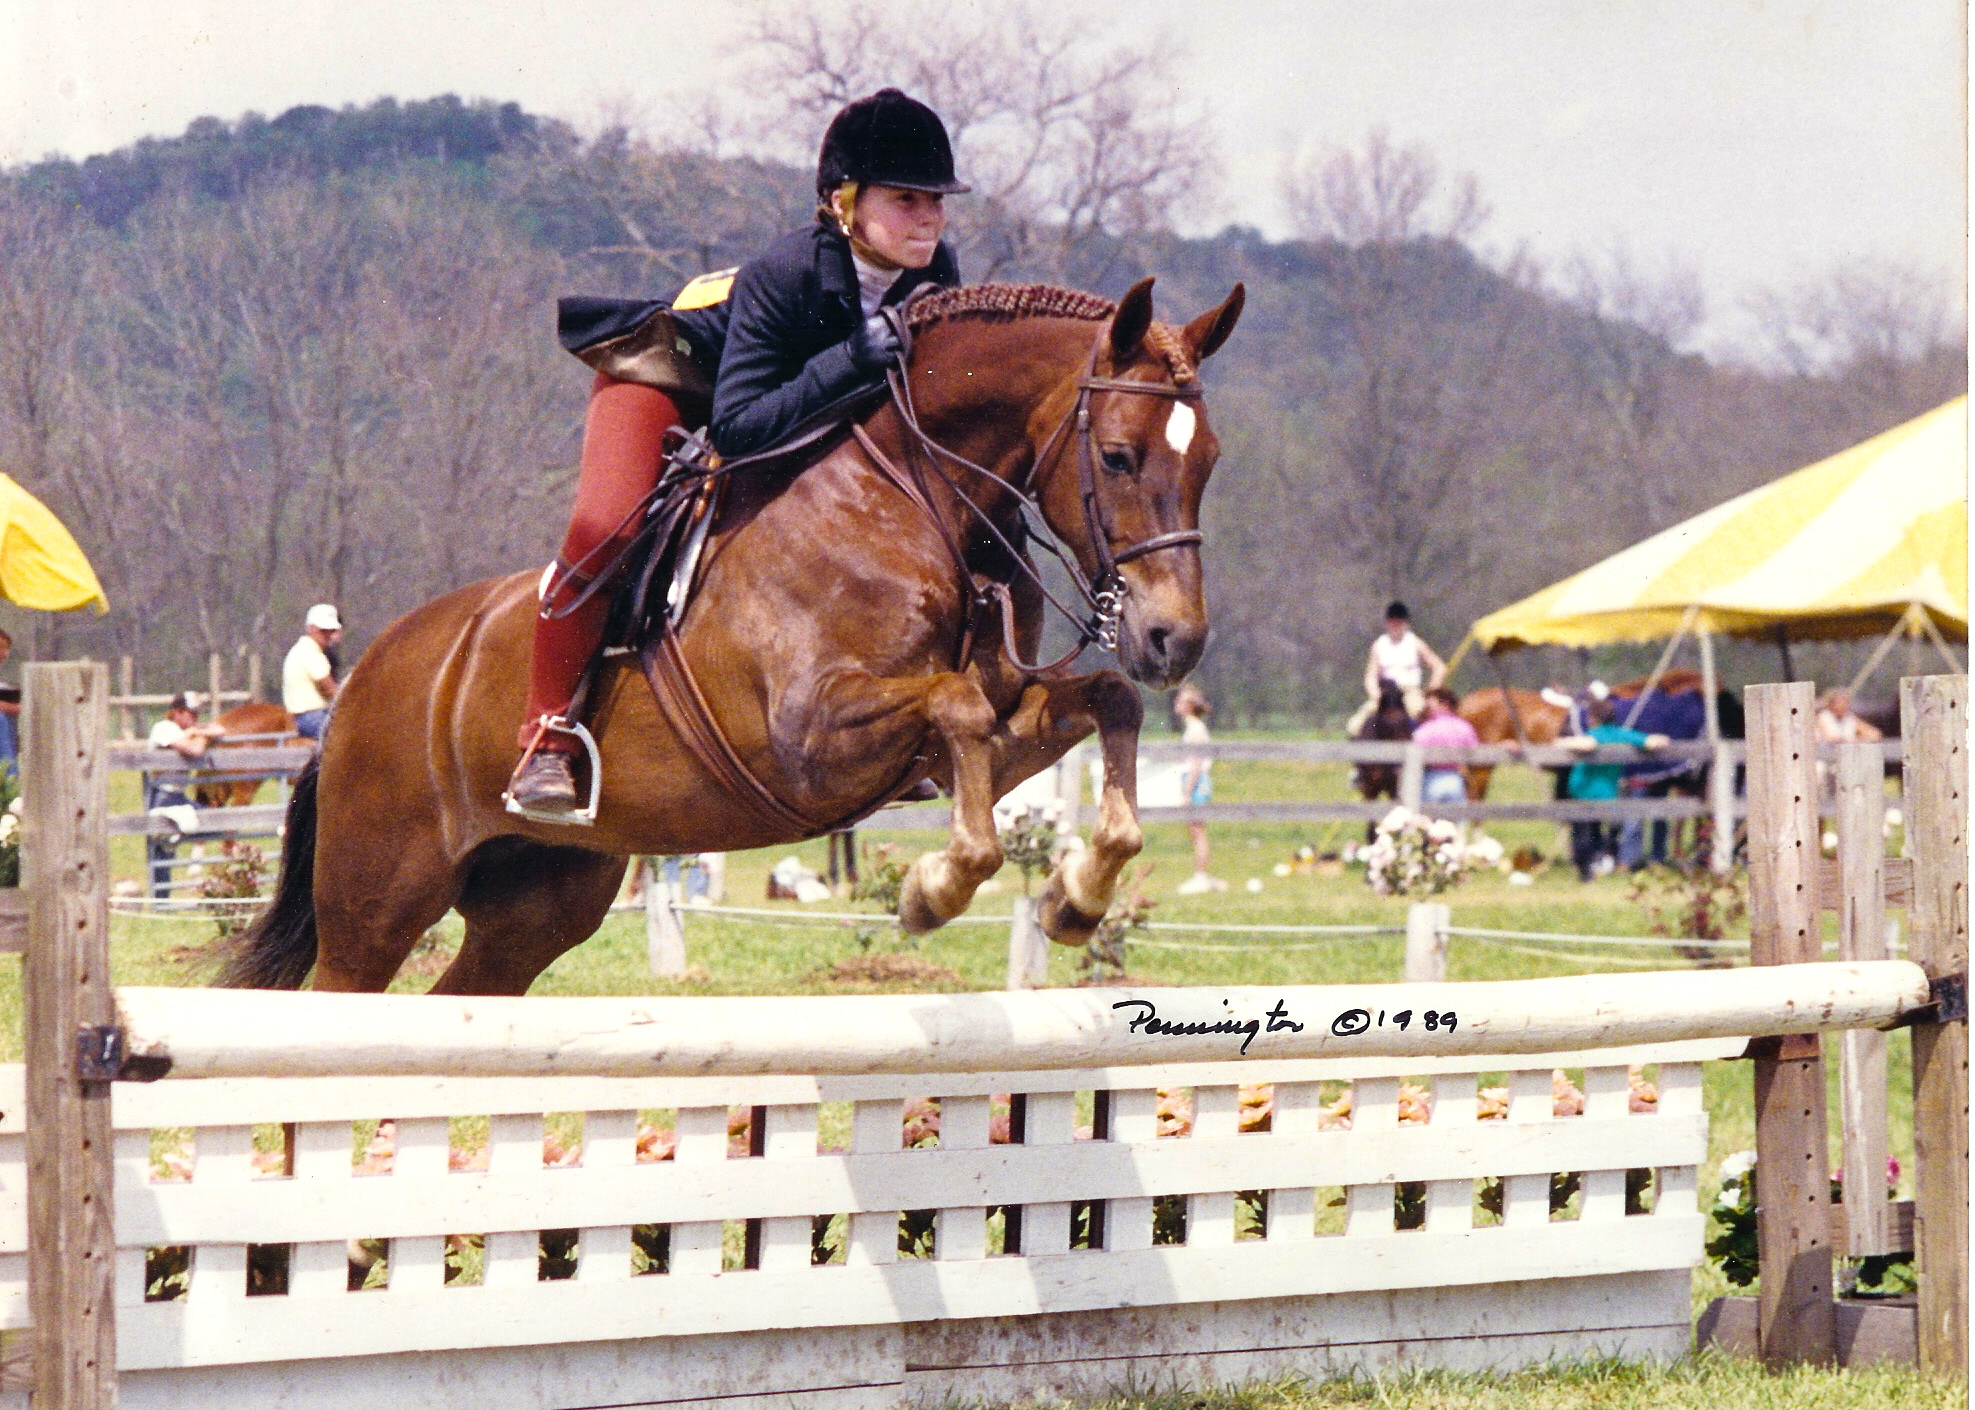 Fiesta Fanfare & Rachel Anderson (Oaks) at Brownland Farm in 1989